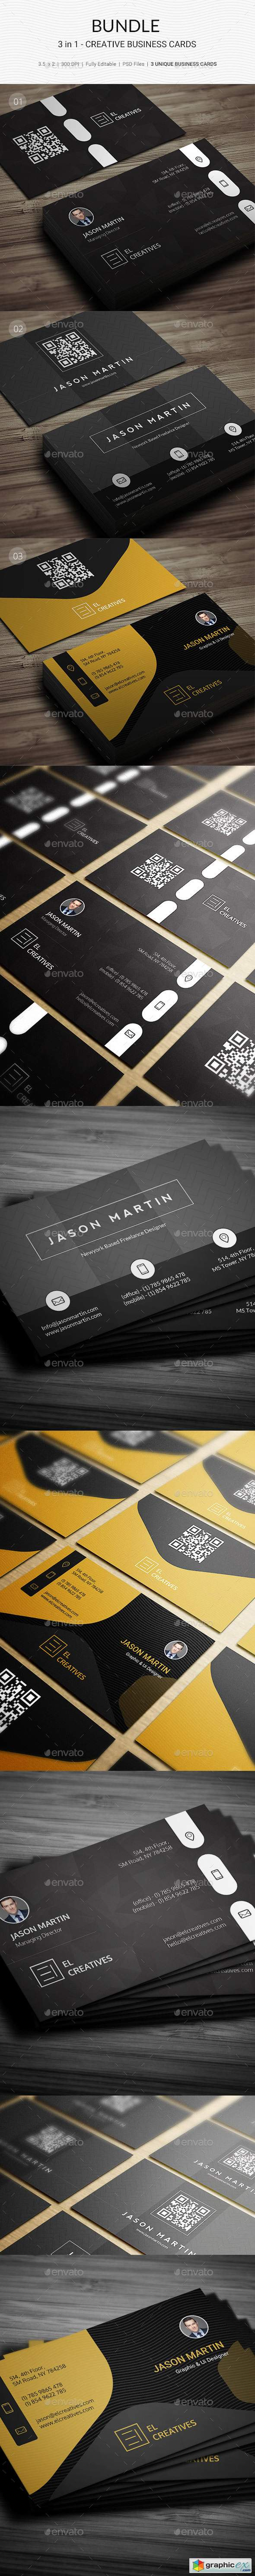 Business Card Bundle 21955796Bundle - 3 in 1 - Creative Business Cards - 180